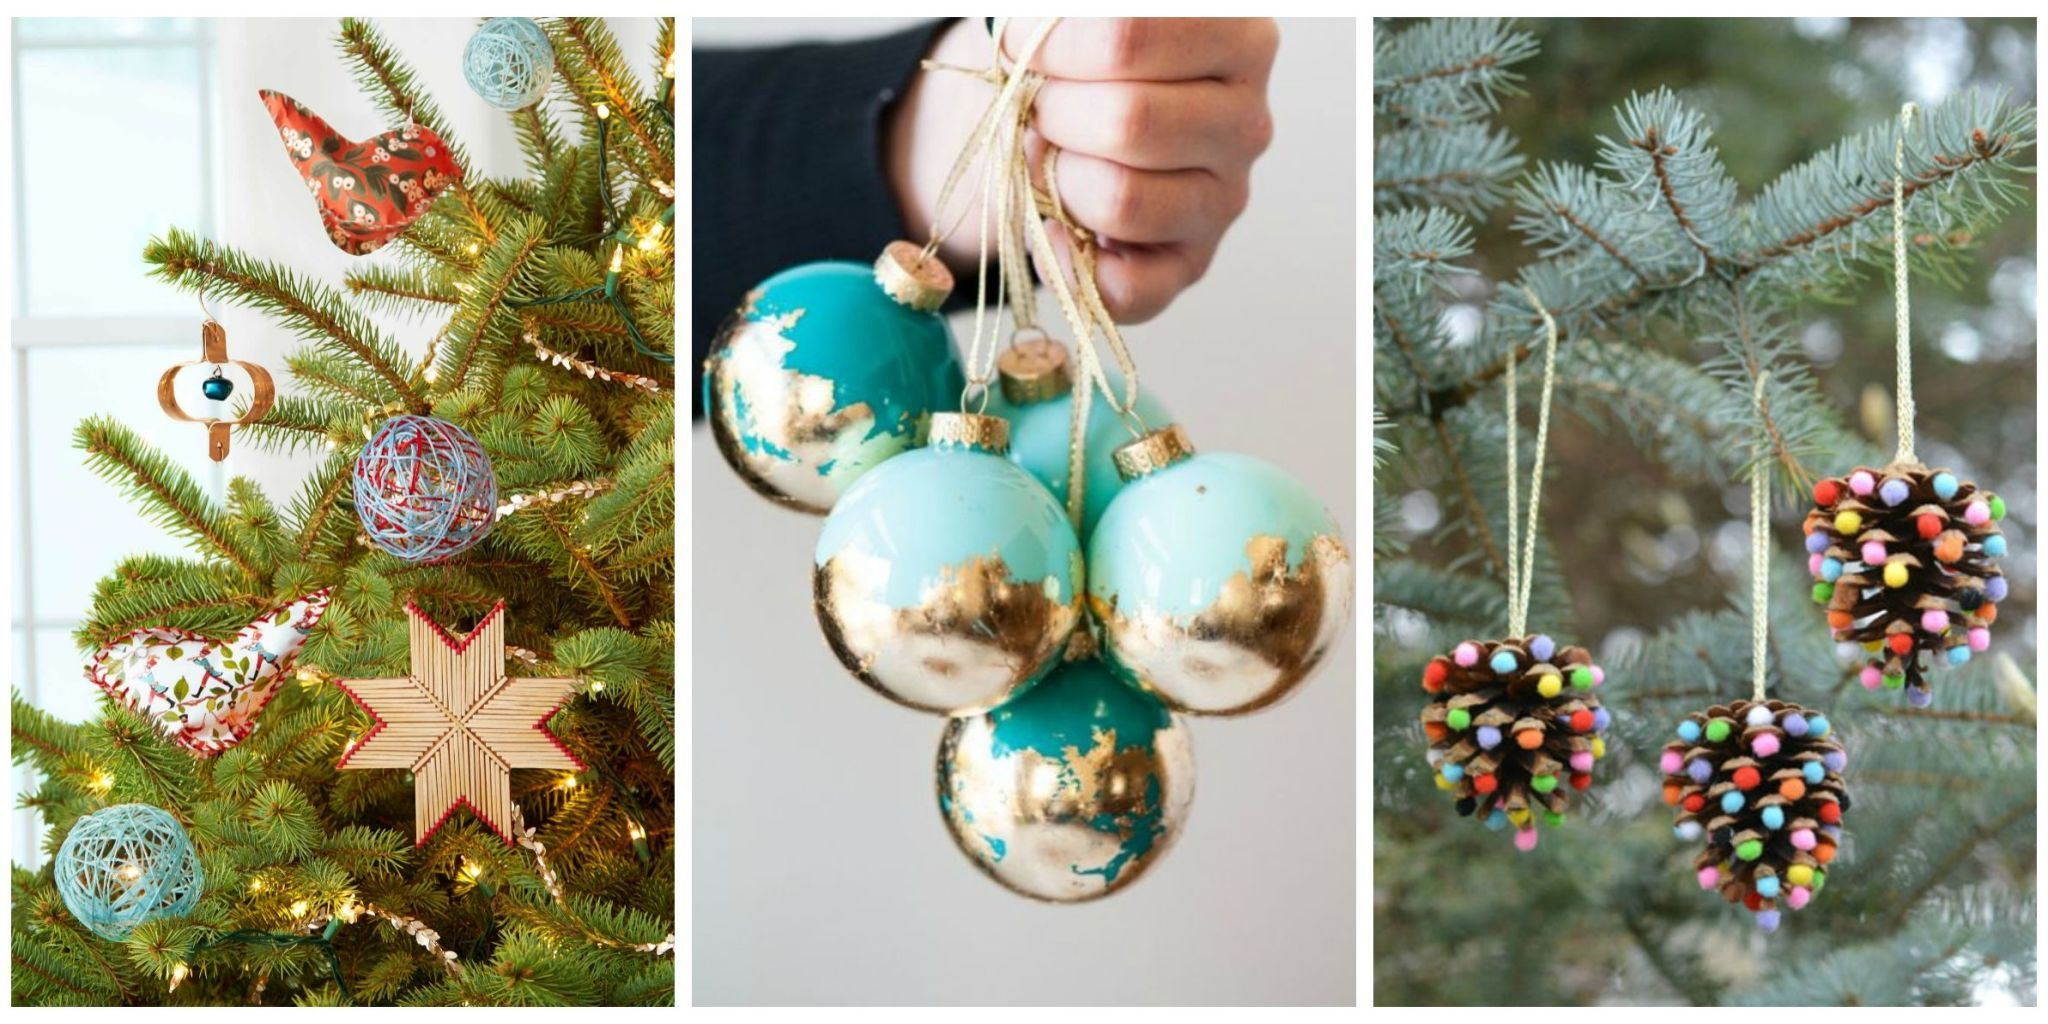 Skip the store-bought decor and get crafty this holiday season with these homemade ornaments. & 32 Homemade DIY Christmas Ornament Craft Ideas - How To Make Holiday ...